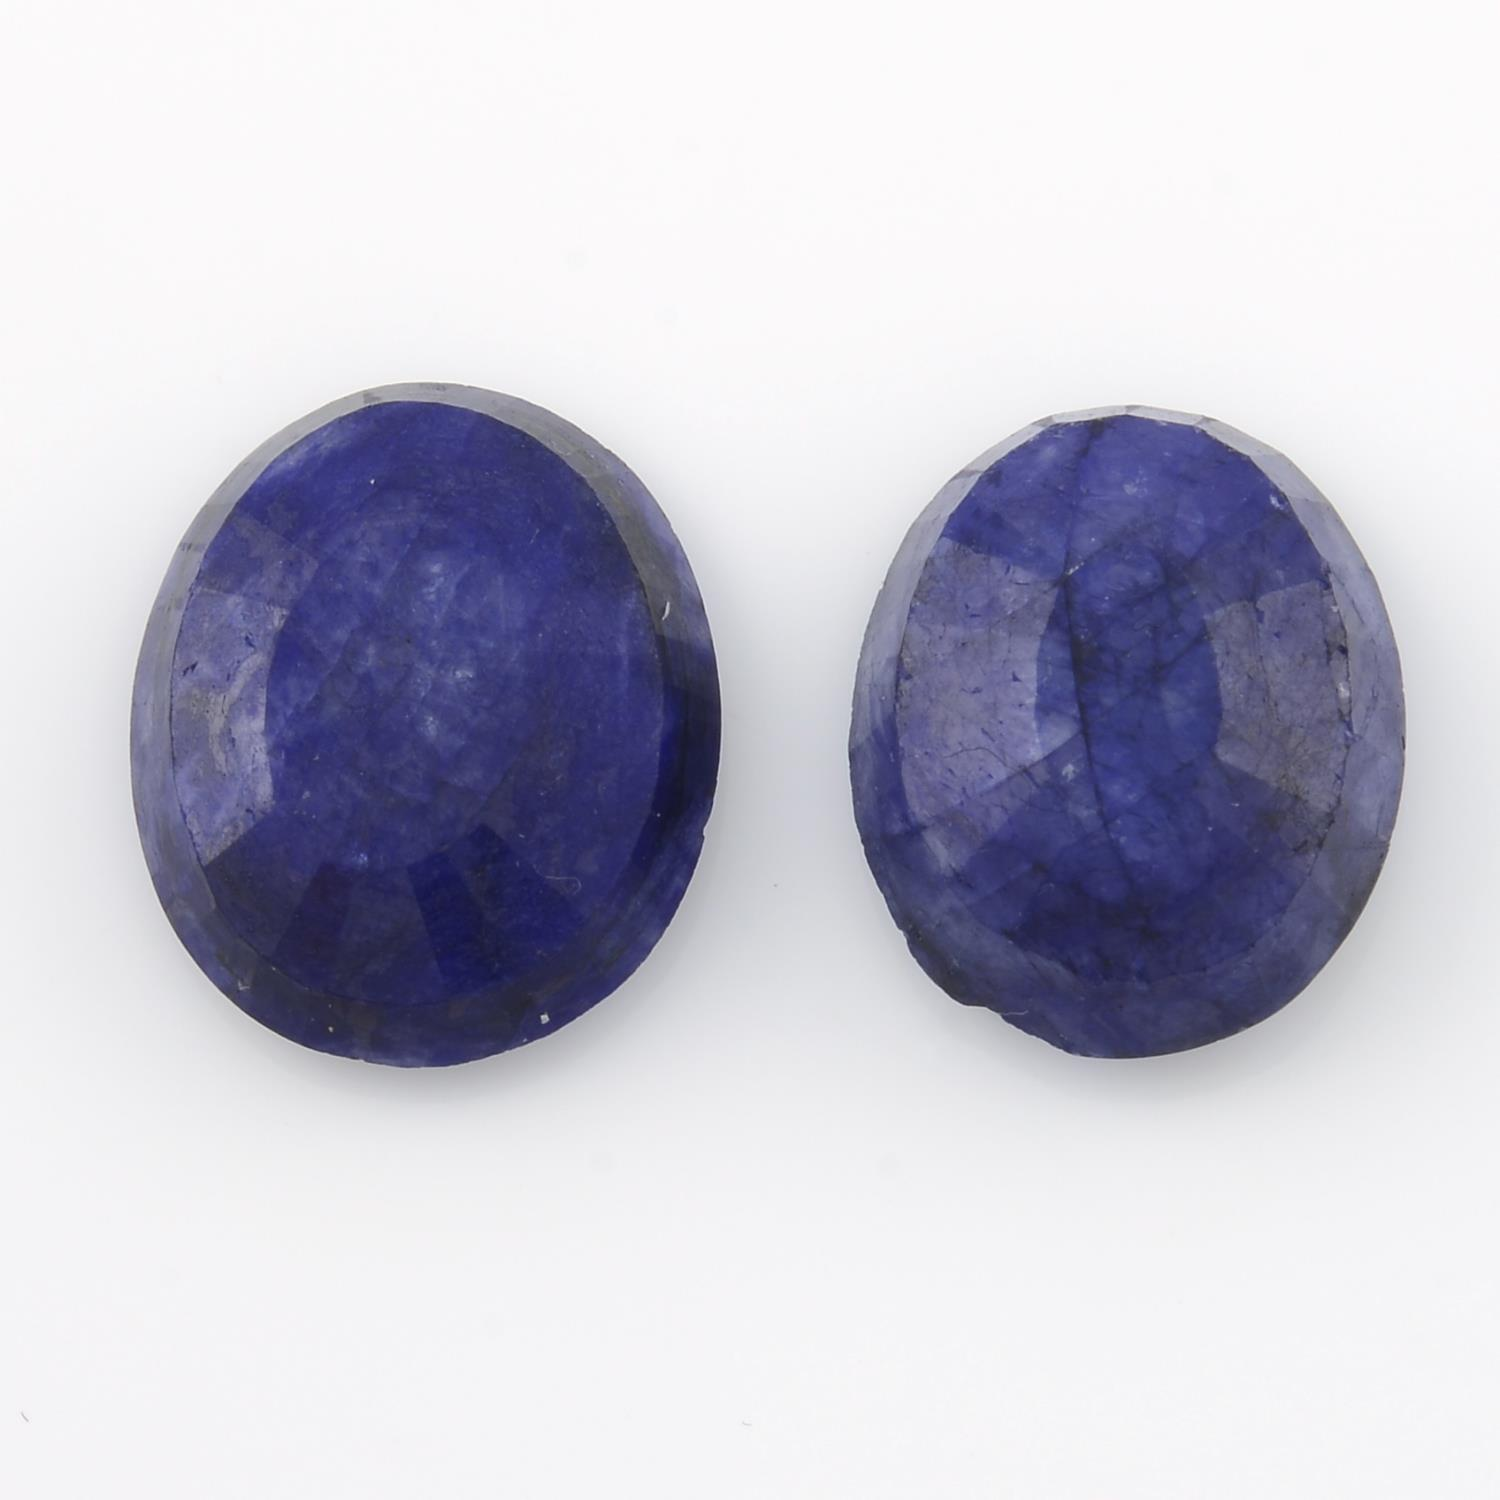 Four oval shape blue corundum,weighing 346gms. - Image 2 of 4